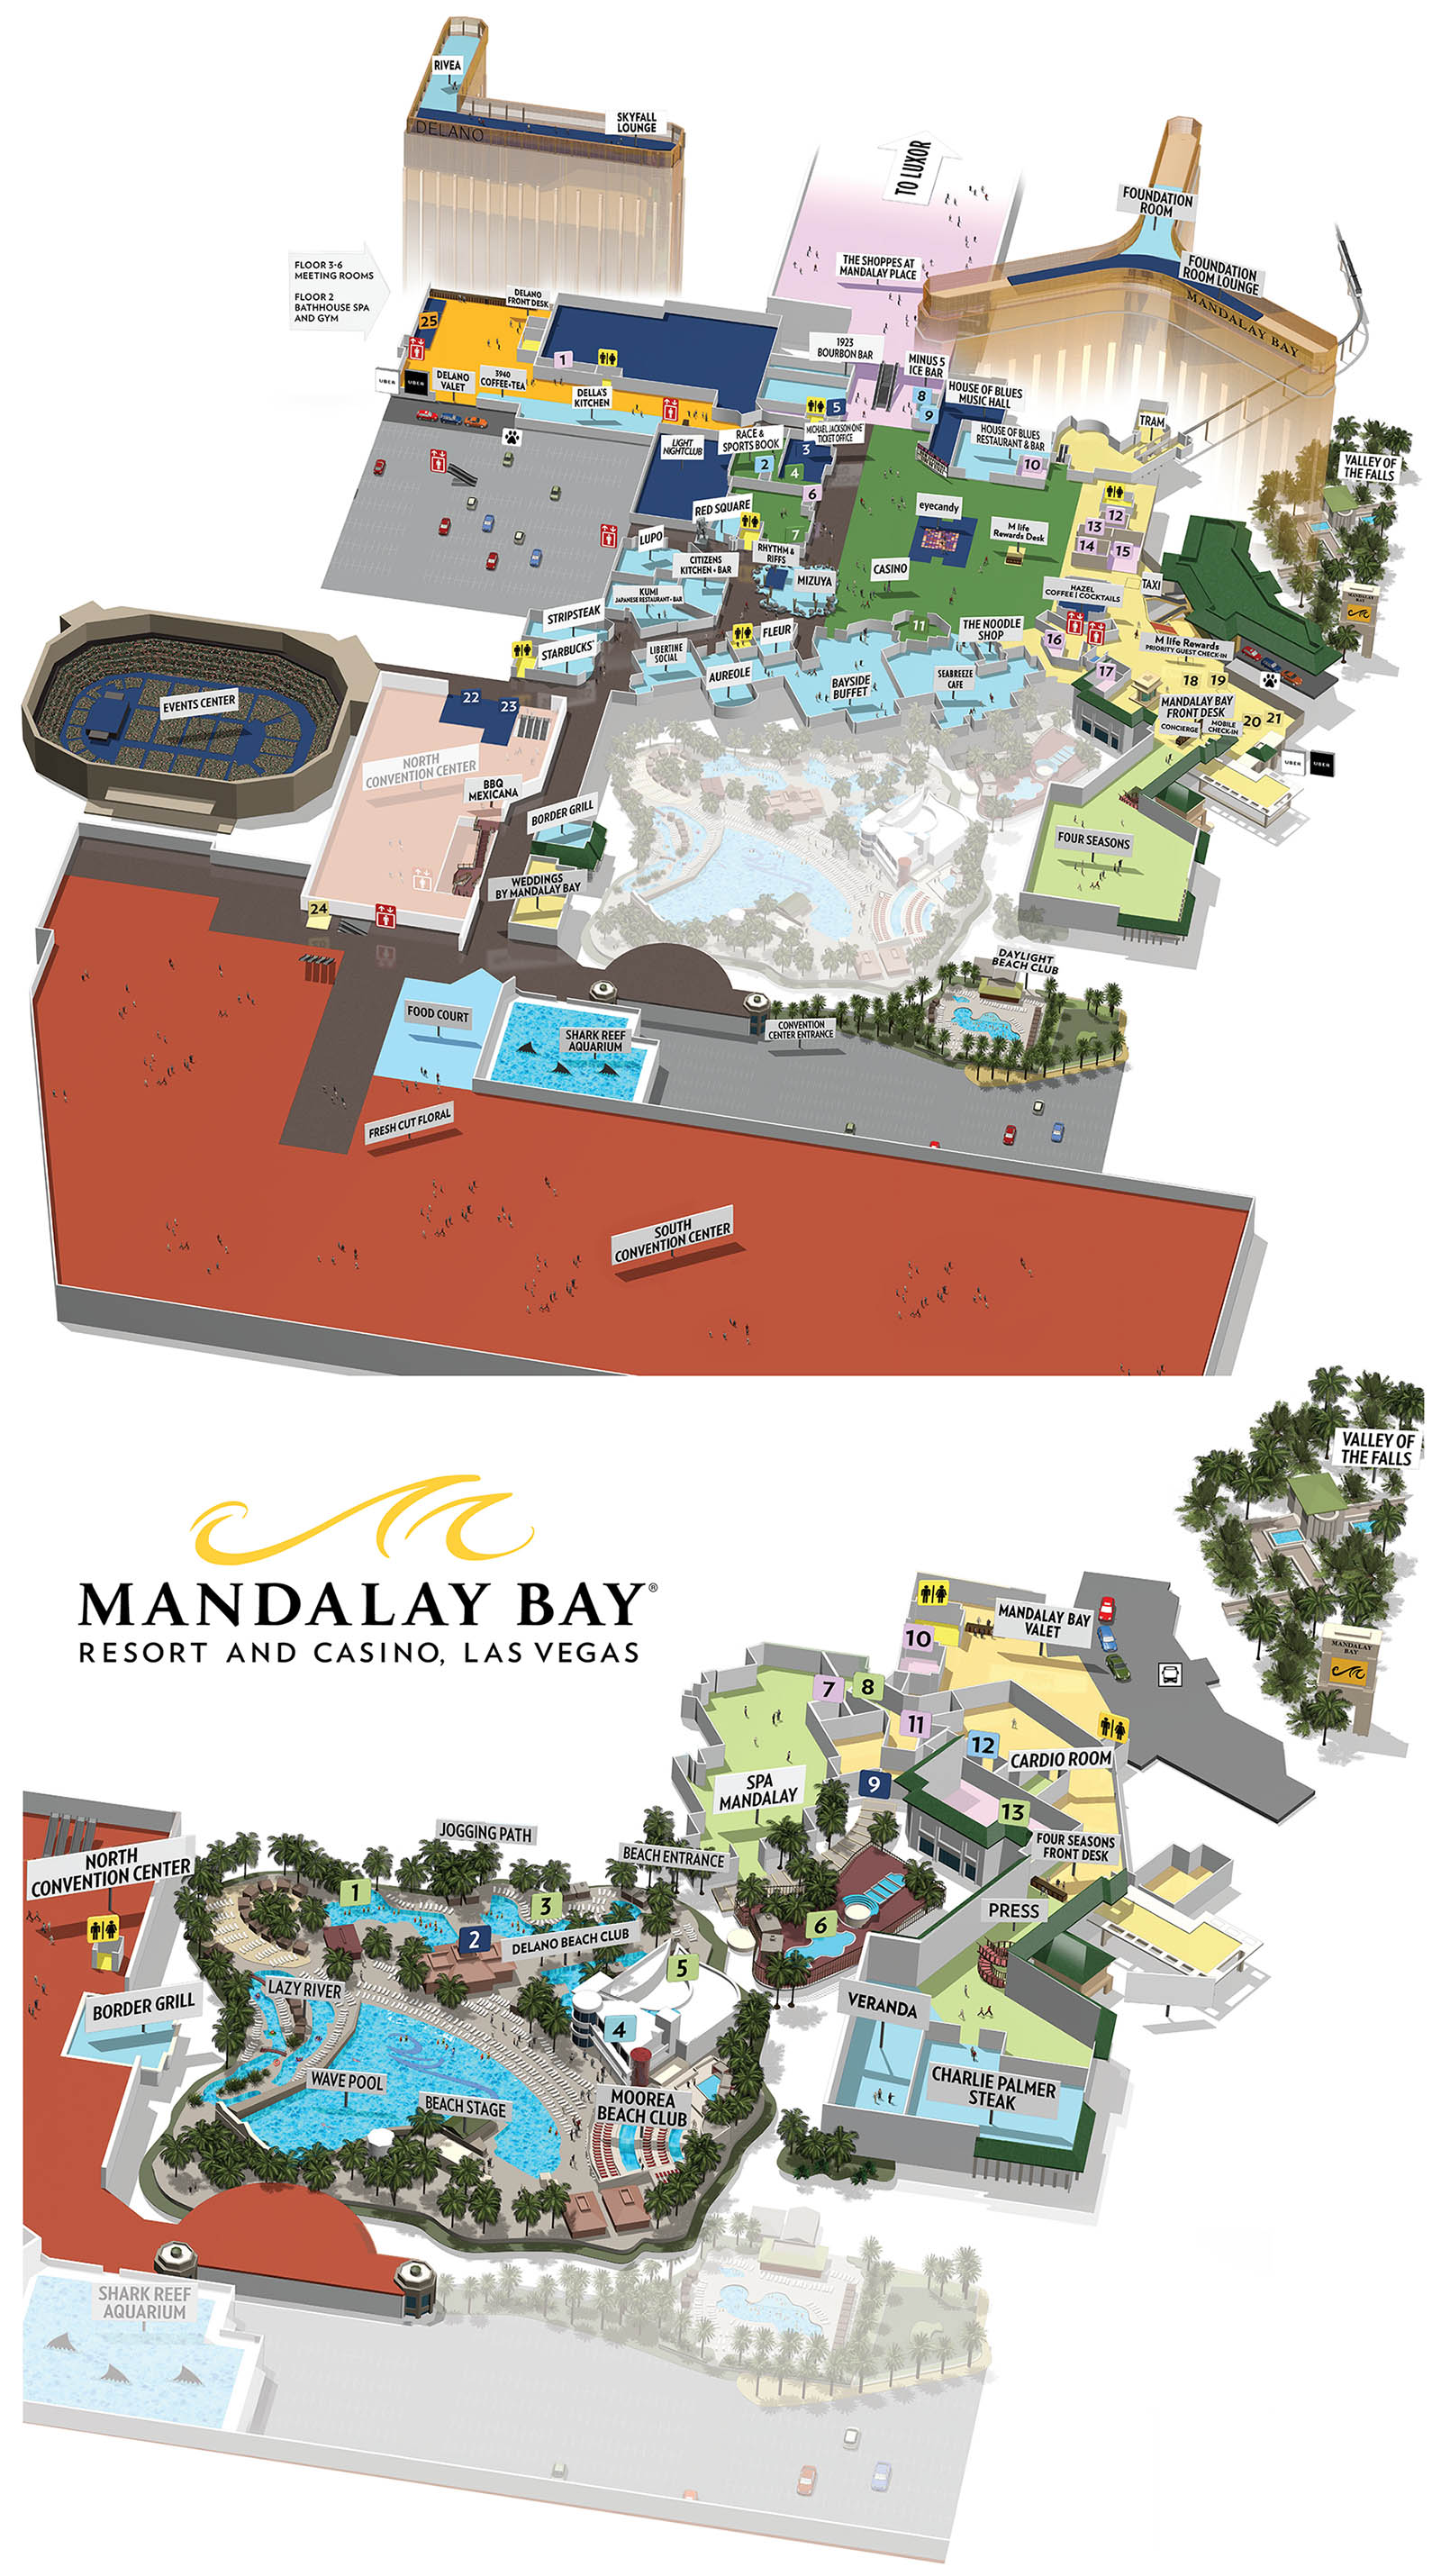 Mandalay Bay Casino Property Map Amp Floor Plans Las Vegas